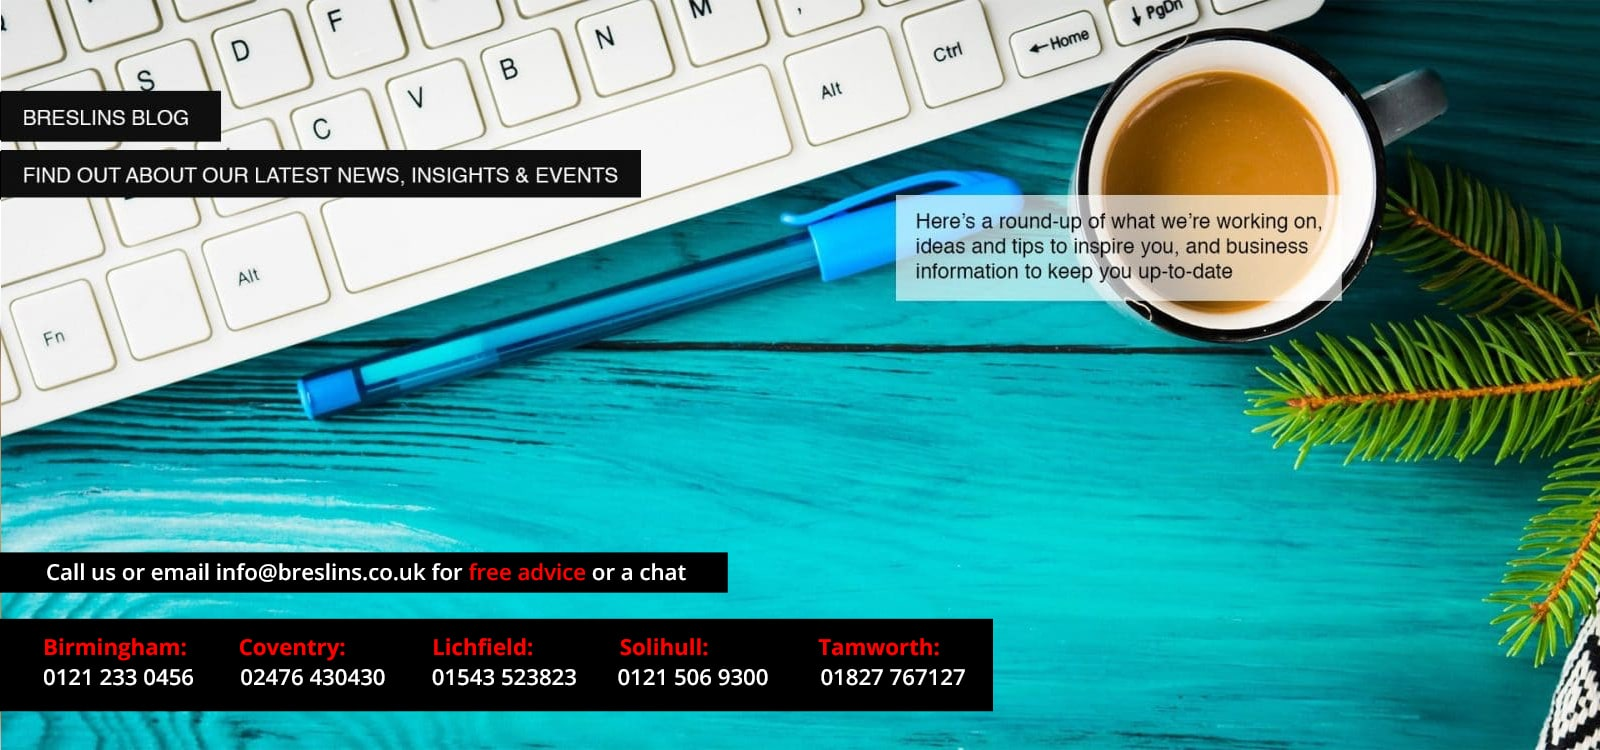 breslins poster for news and blogs with keyboard, pen and coffee mug in background